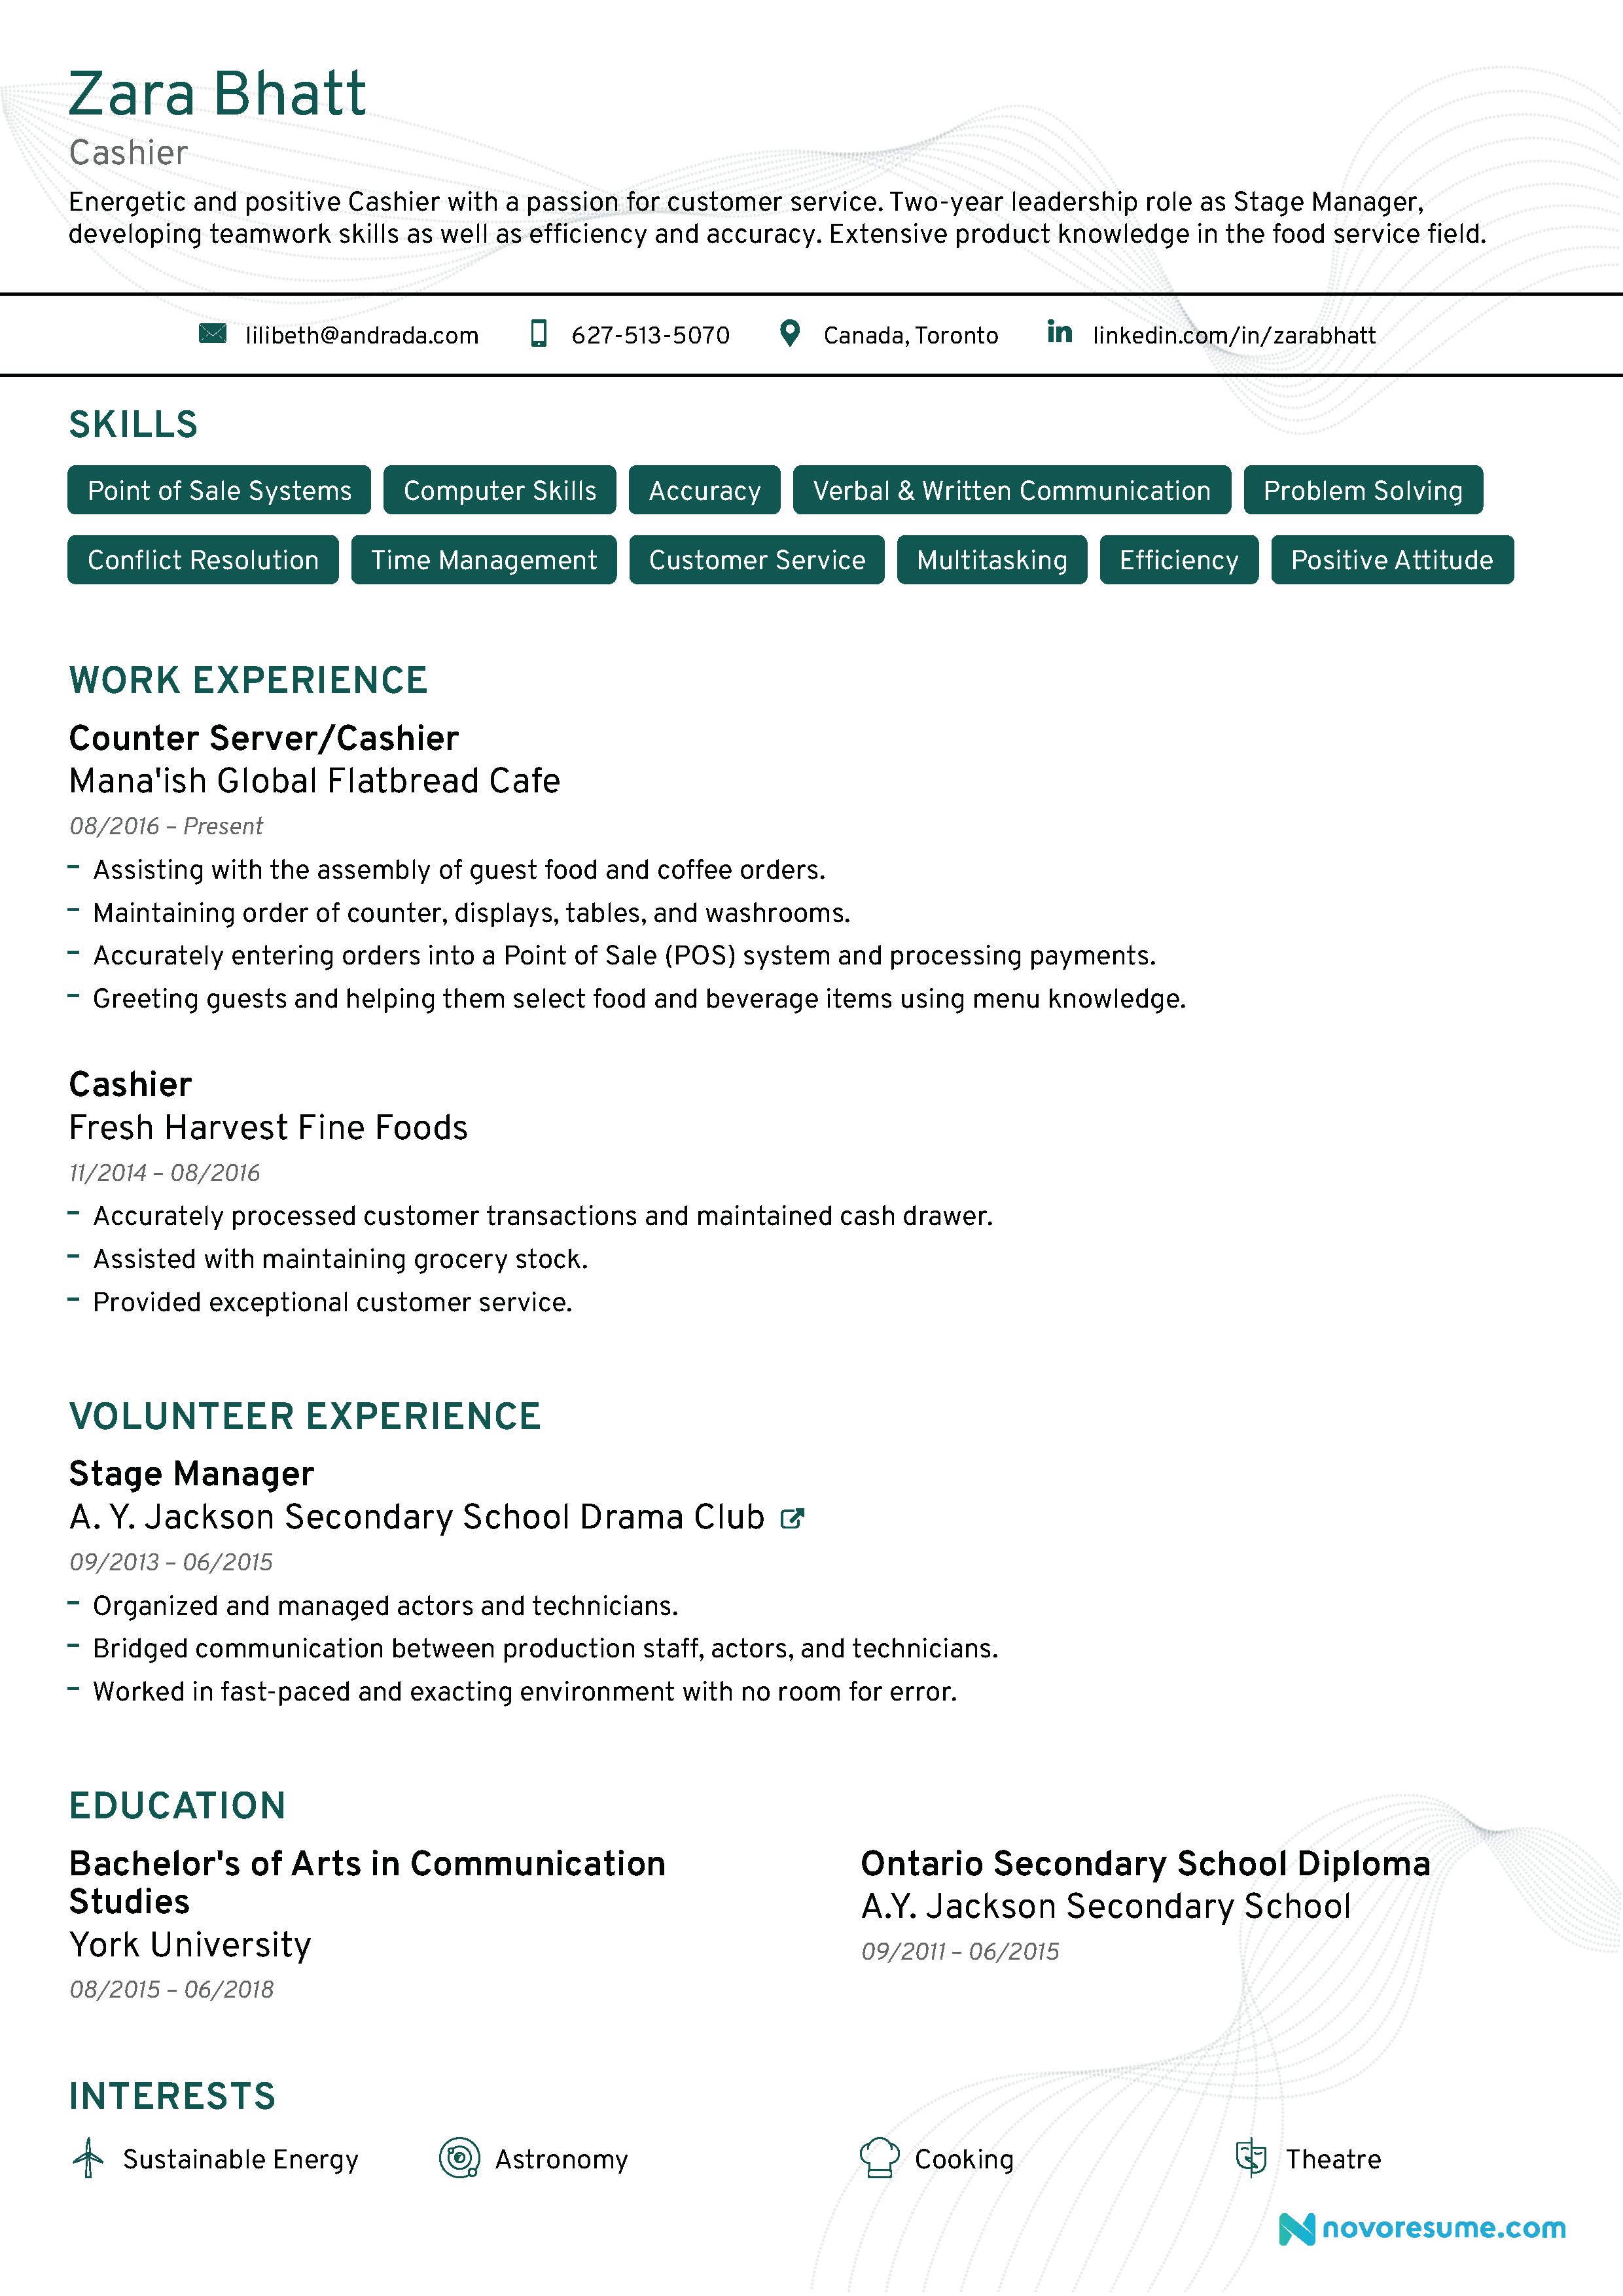 Objective Resume Examples For Cashier